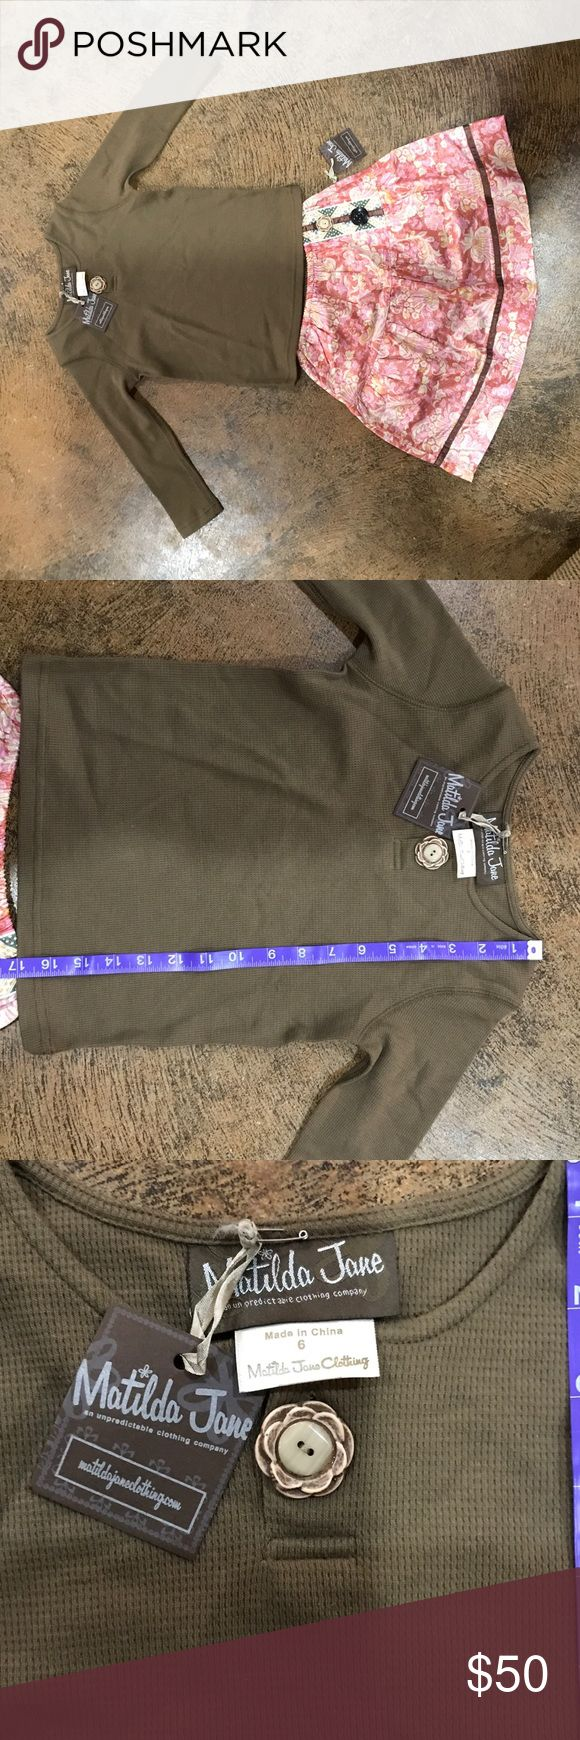 NWT Matilda Jane Skirt set Sz 6 This it's an ultra rare set from Matilda Jane. It's new with tags, brand new!! Gorgeous shiny fabric with whimsical button details on the skirt. The top has a matching button at the neckline. The top is a thermal type fabric that will keep your daughter cozy all Thru fall and winter. Retail $90+ I'm also listing this on ebay, so first come, first served! Matilda Jane Matching Sets